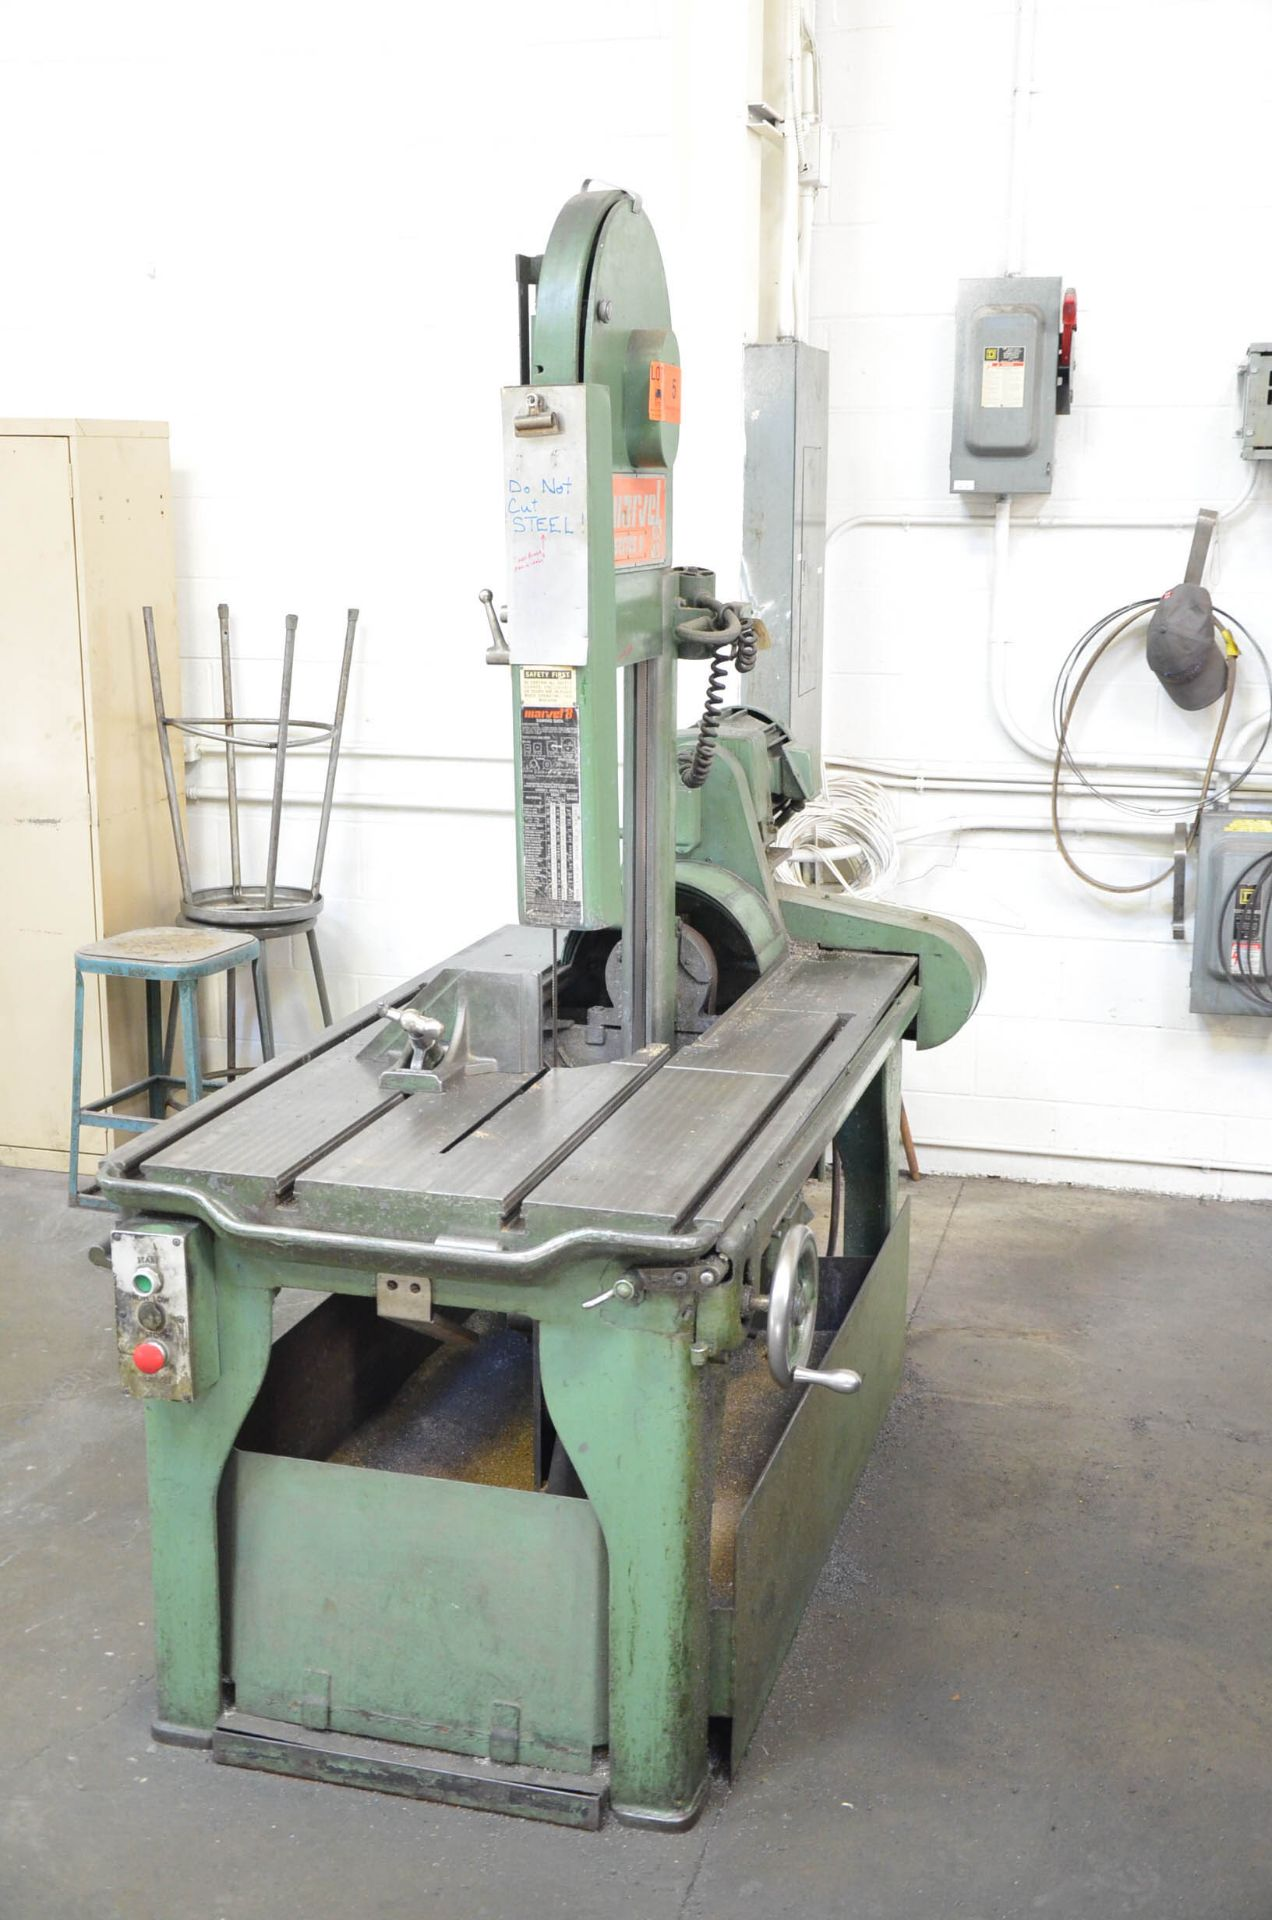 """MARVEL SERIES 8 TILTING HEAD SLIDING FRAME VERTICAL BAND SAW WITH 17"""" THROAT, 12"""" MAX WORKPIECE - Image 2 of 4"""